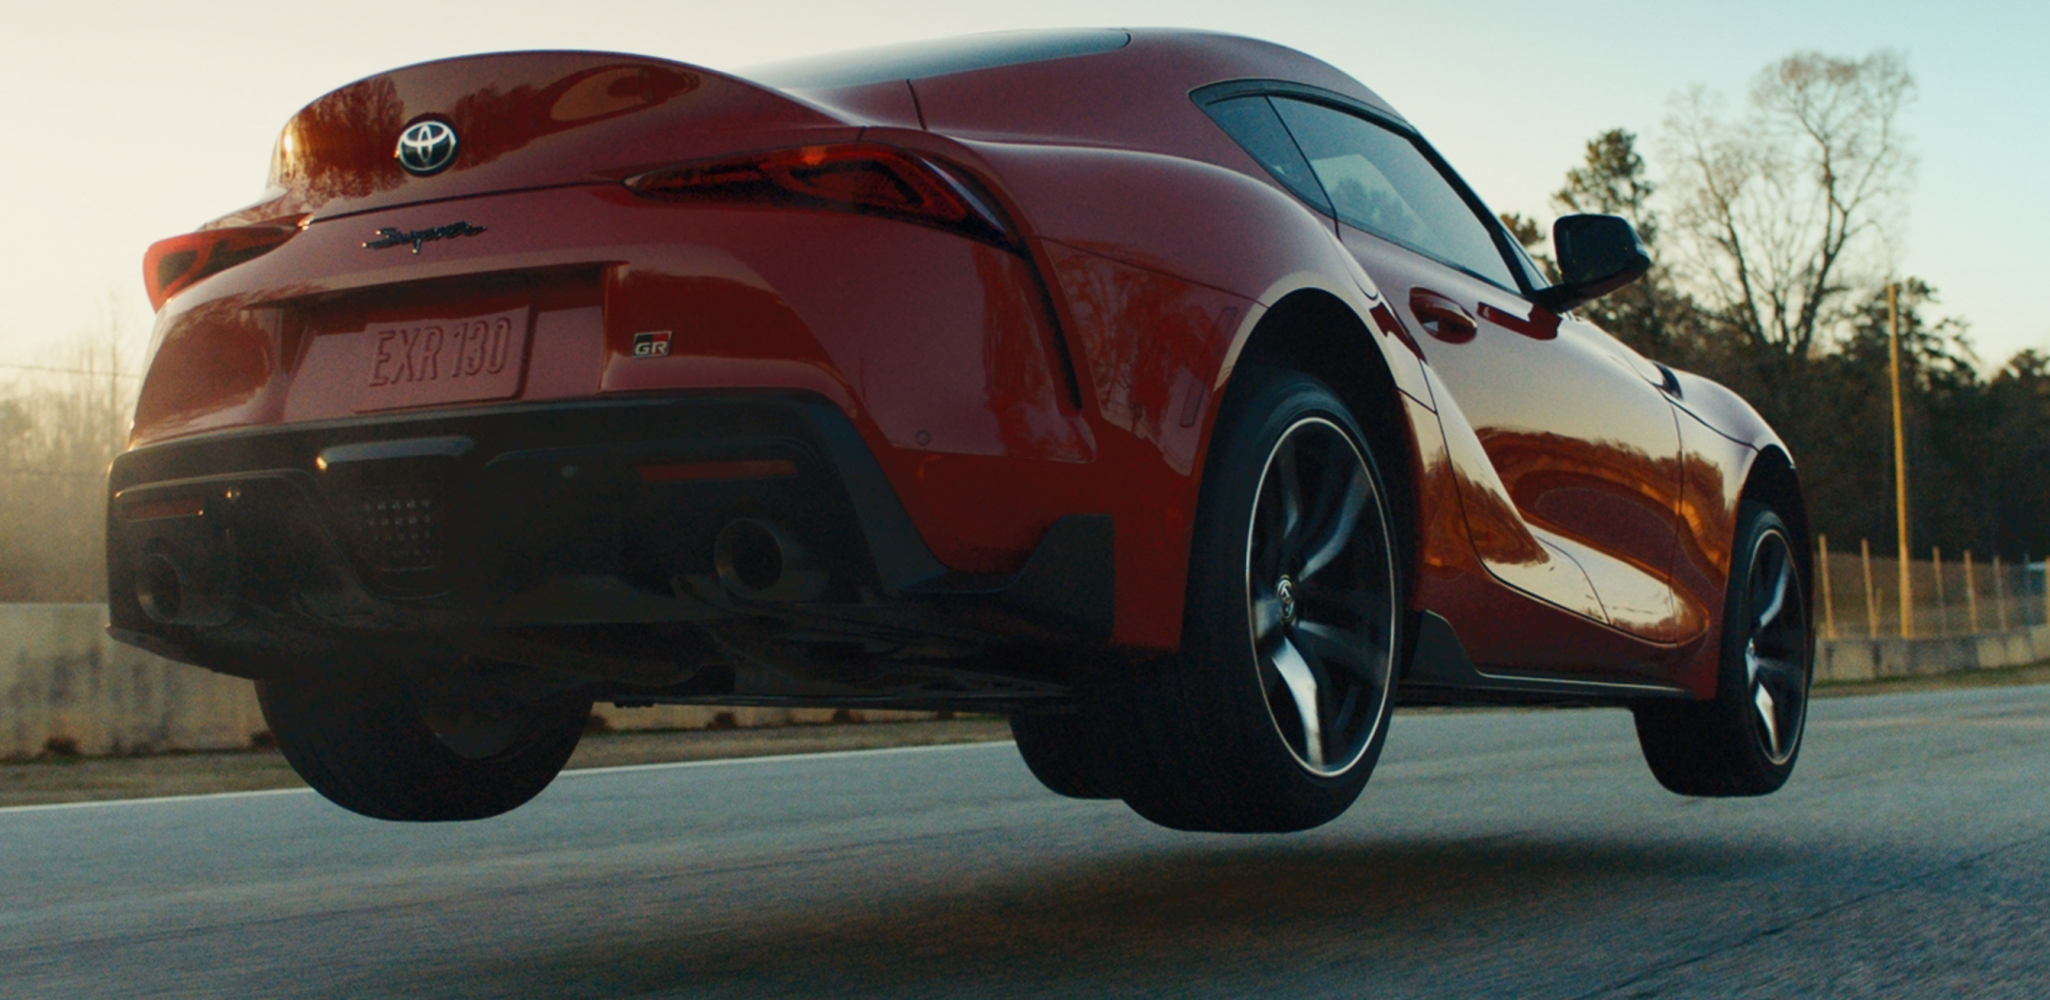 Getting To Know The All-New 2020 Toyota GR Supra